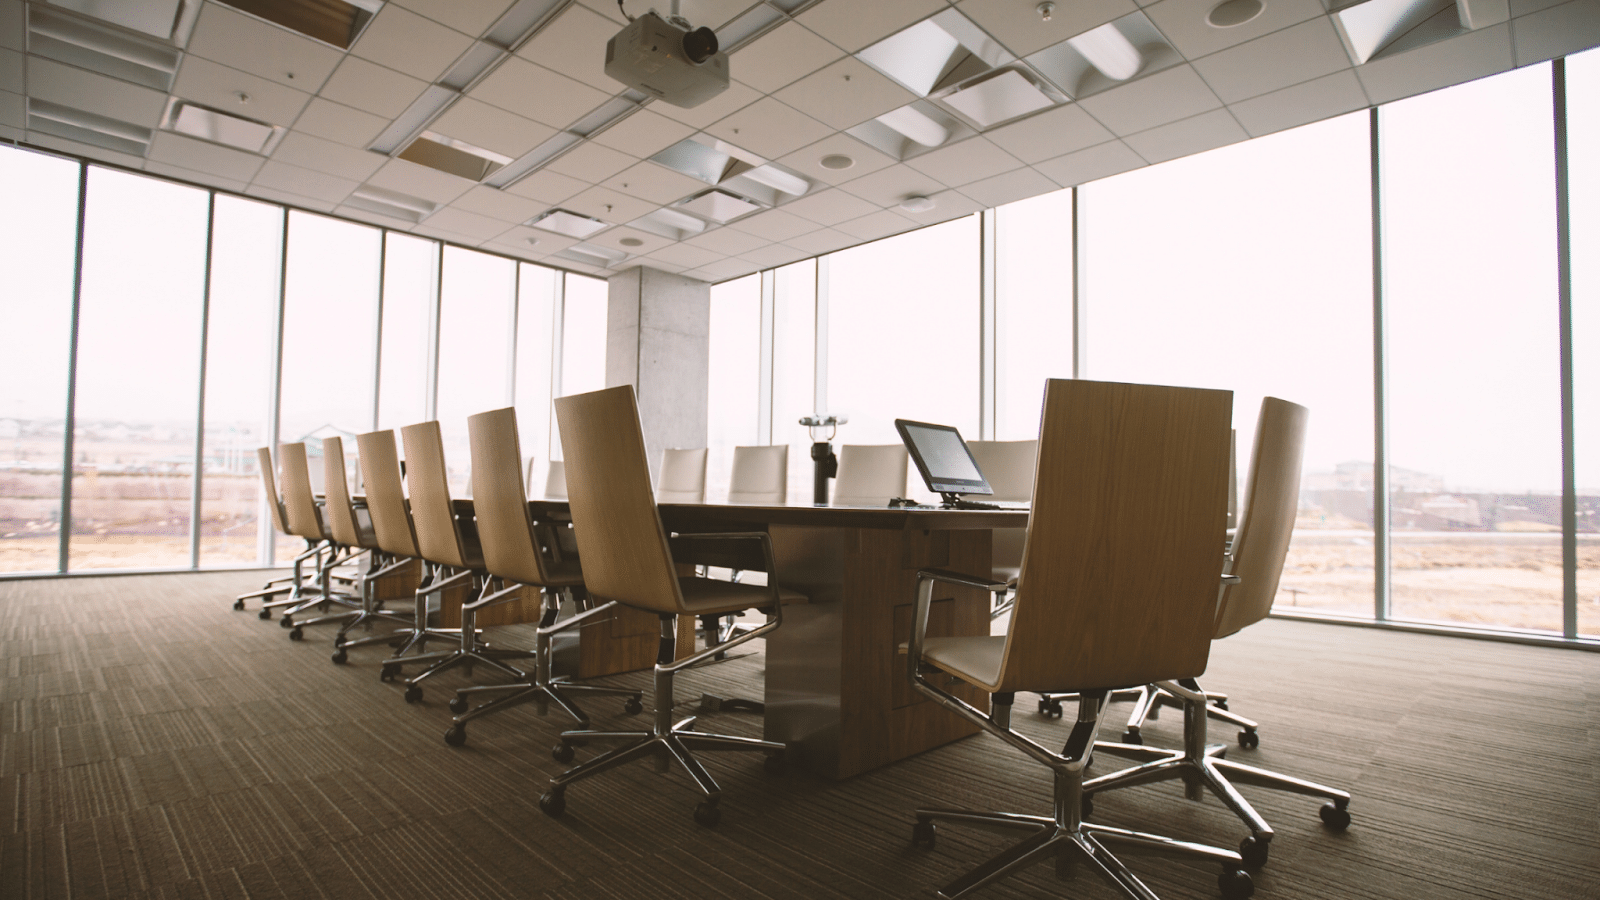 Common AV Issues and Solutions for Conference Rooms